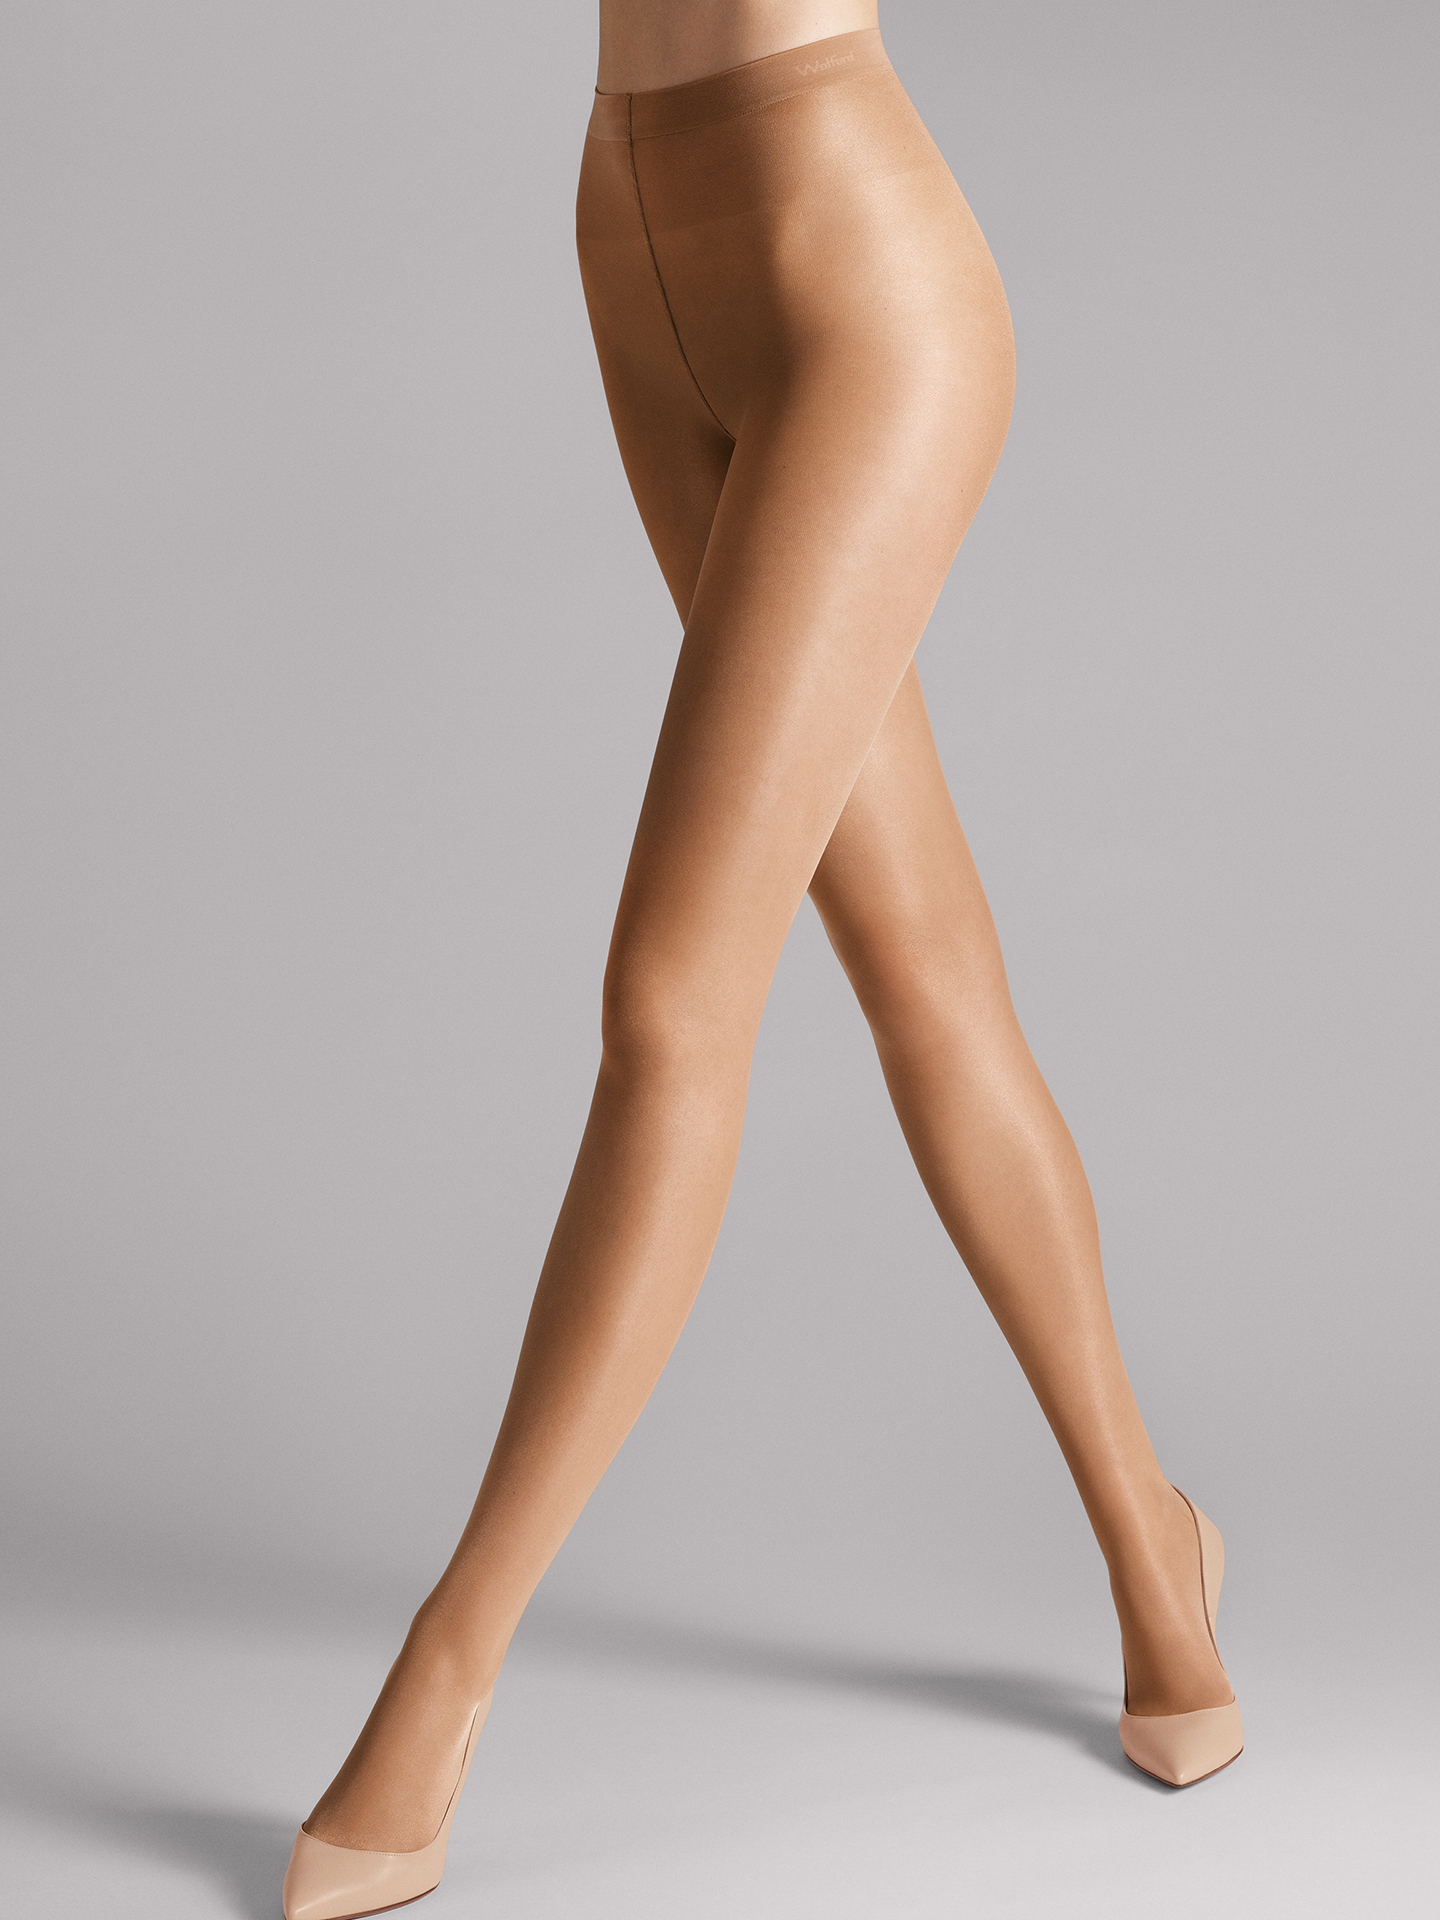 Wolford Apparel & Accessories > Clothing > Collant Satin Touch 20 - 4060 - XXL